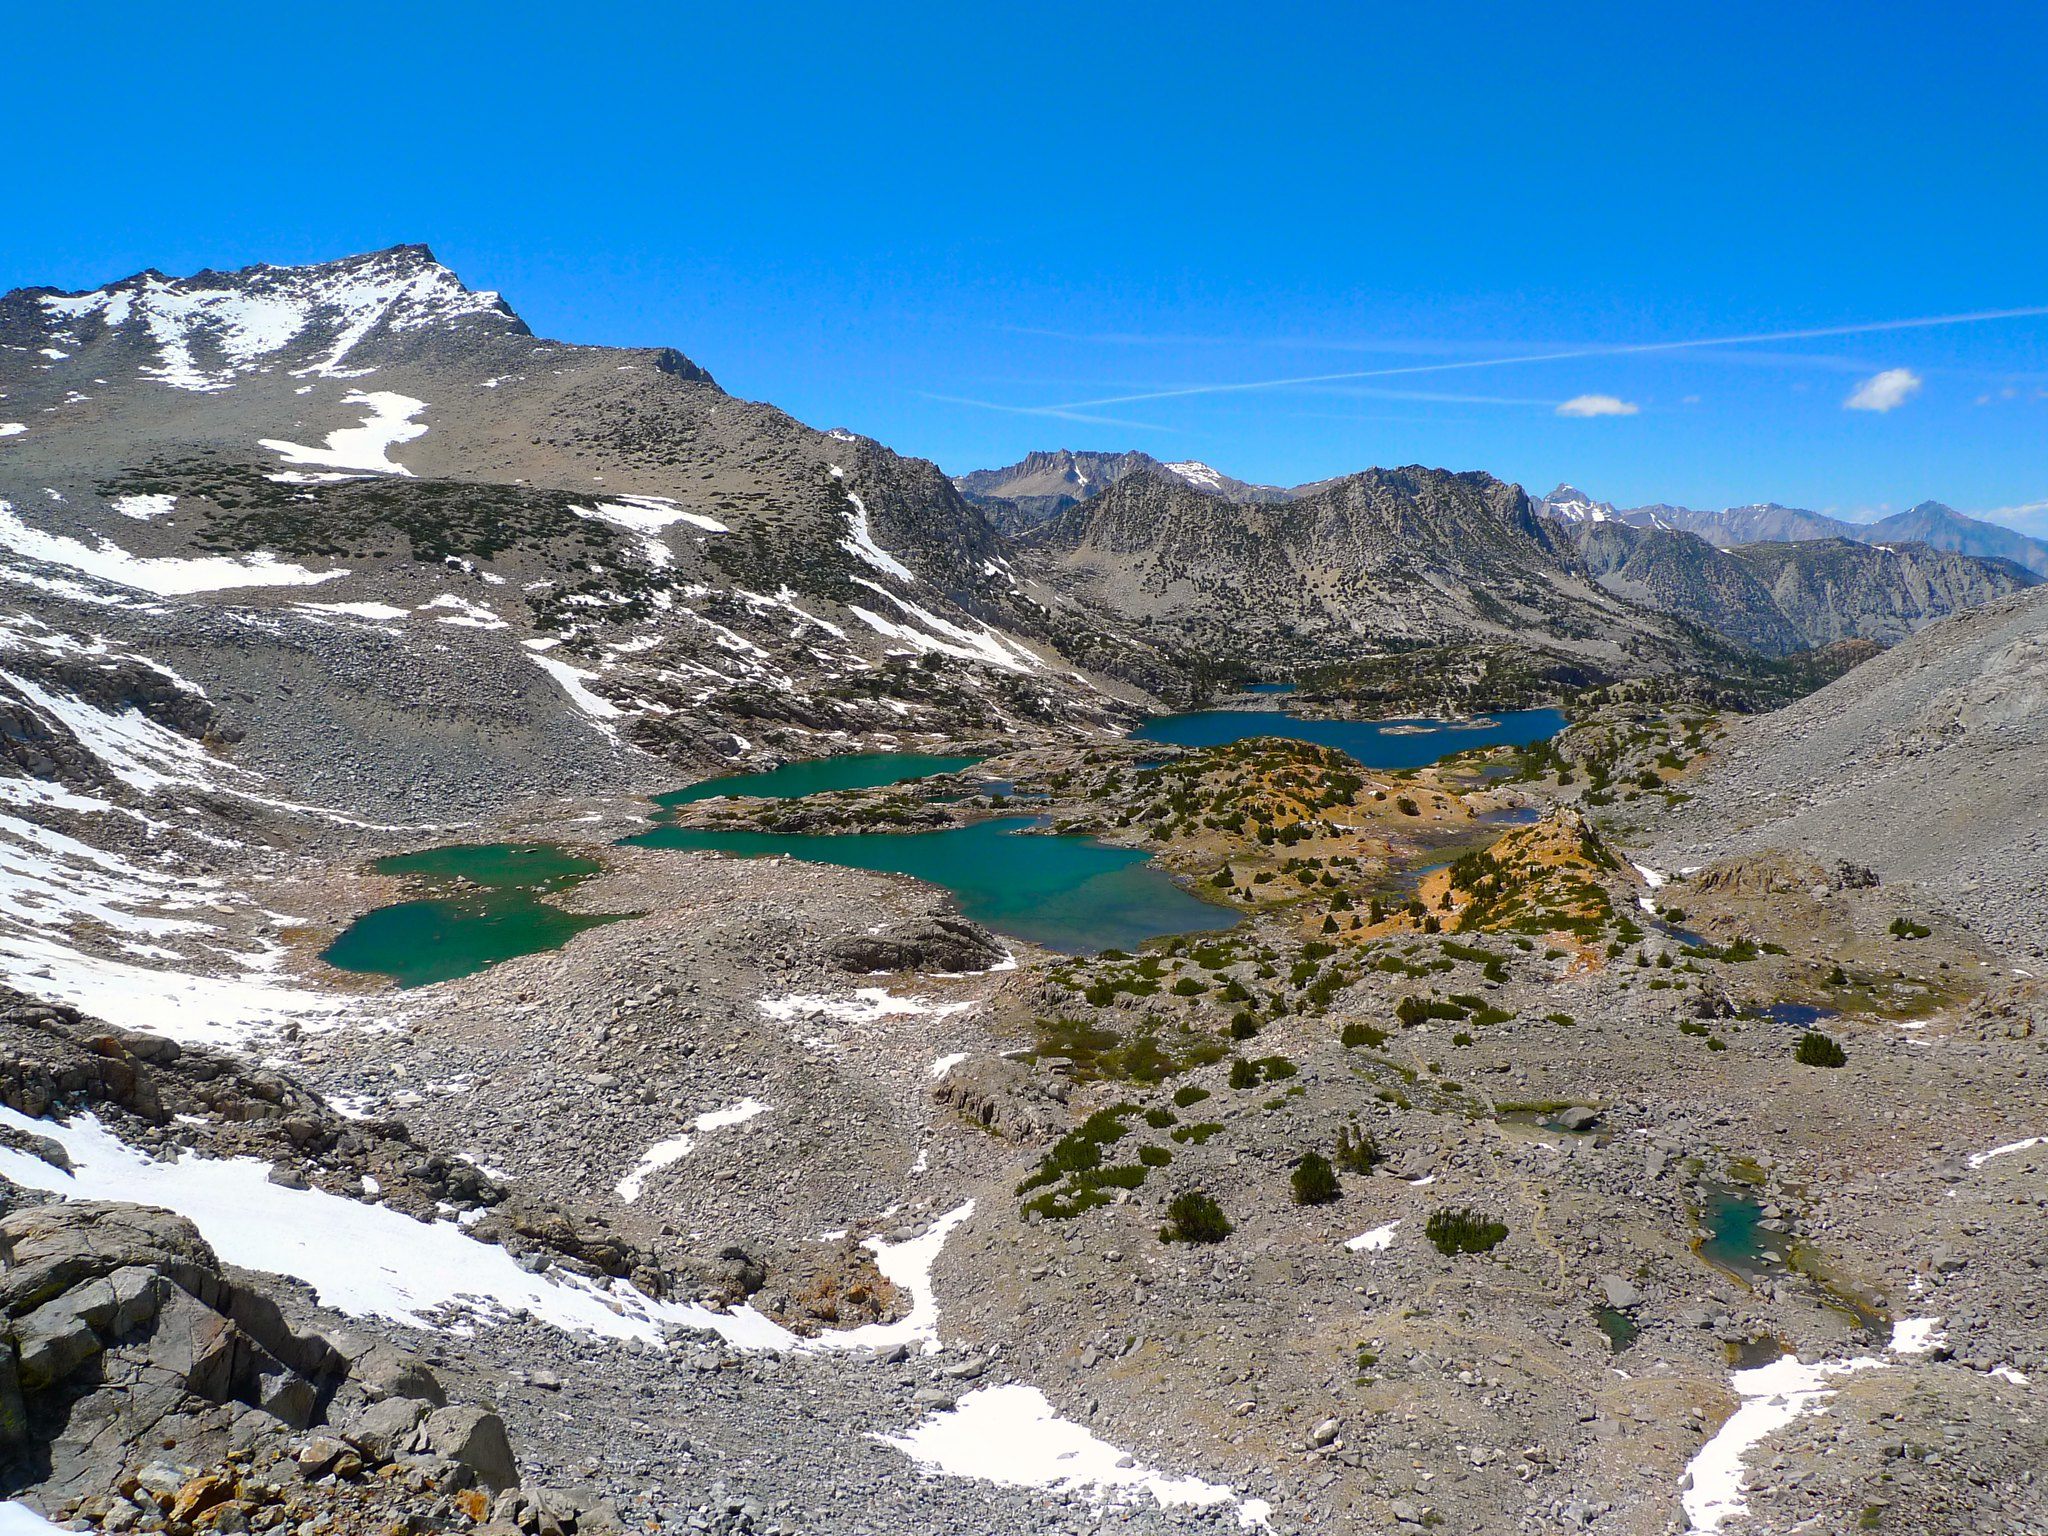 Looking back into the basin as the trail begins to climb up to Bishop Pass